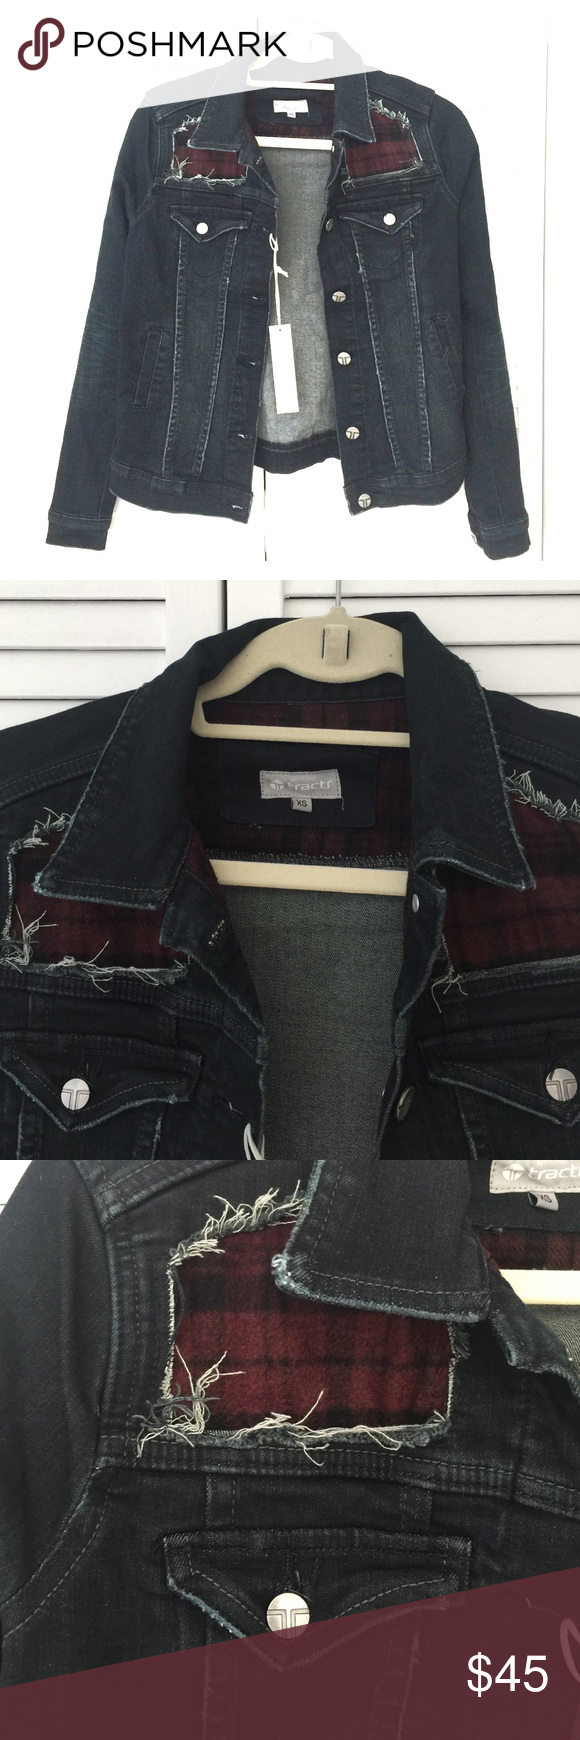 Flannel into dress  TRACTR Distressed Patchwork Flannel Jean Jacket NWT  black jean